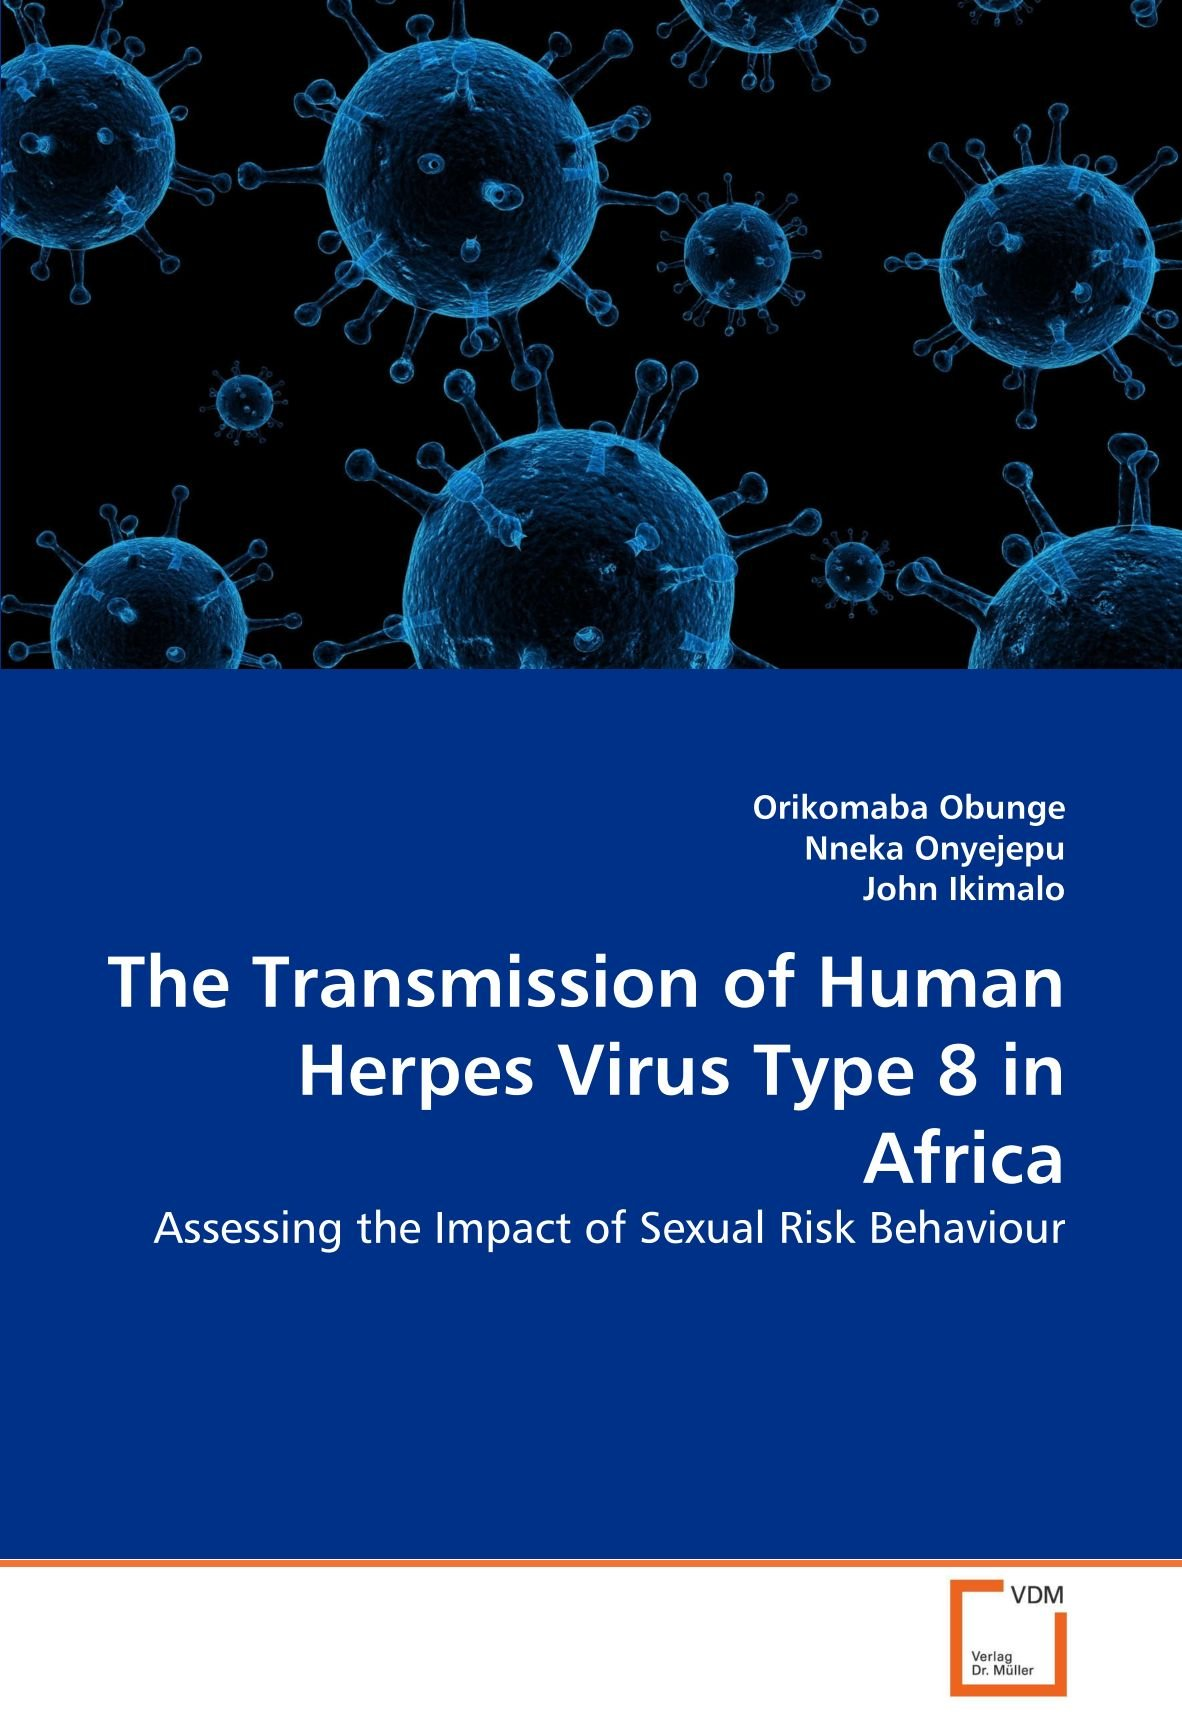 The Transmission of Human Herpes Virus Type 8 in Africa: Assessing the Impact of Sexual Risk Behaviour PDF